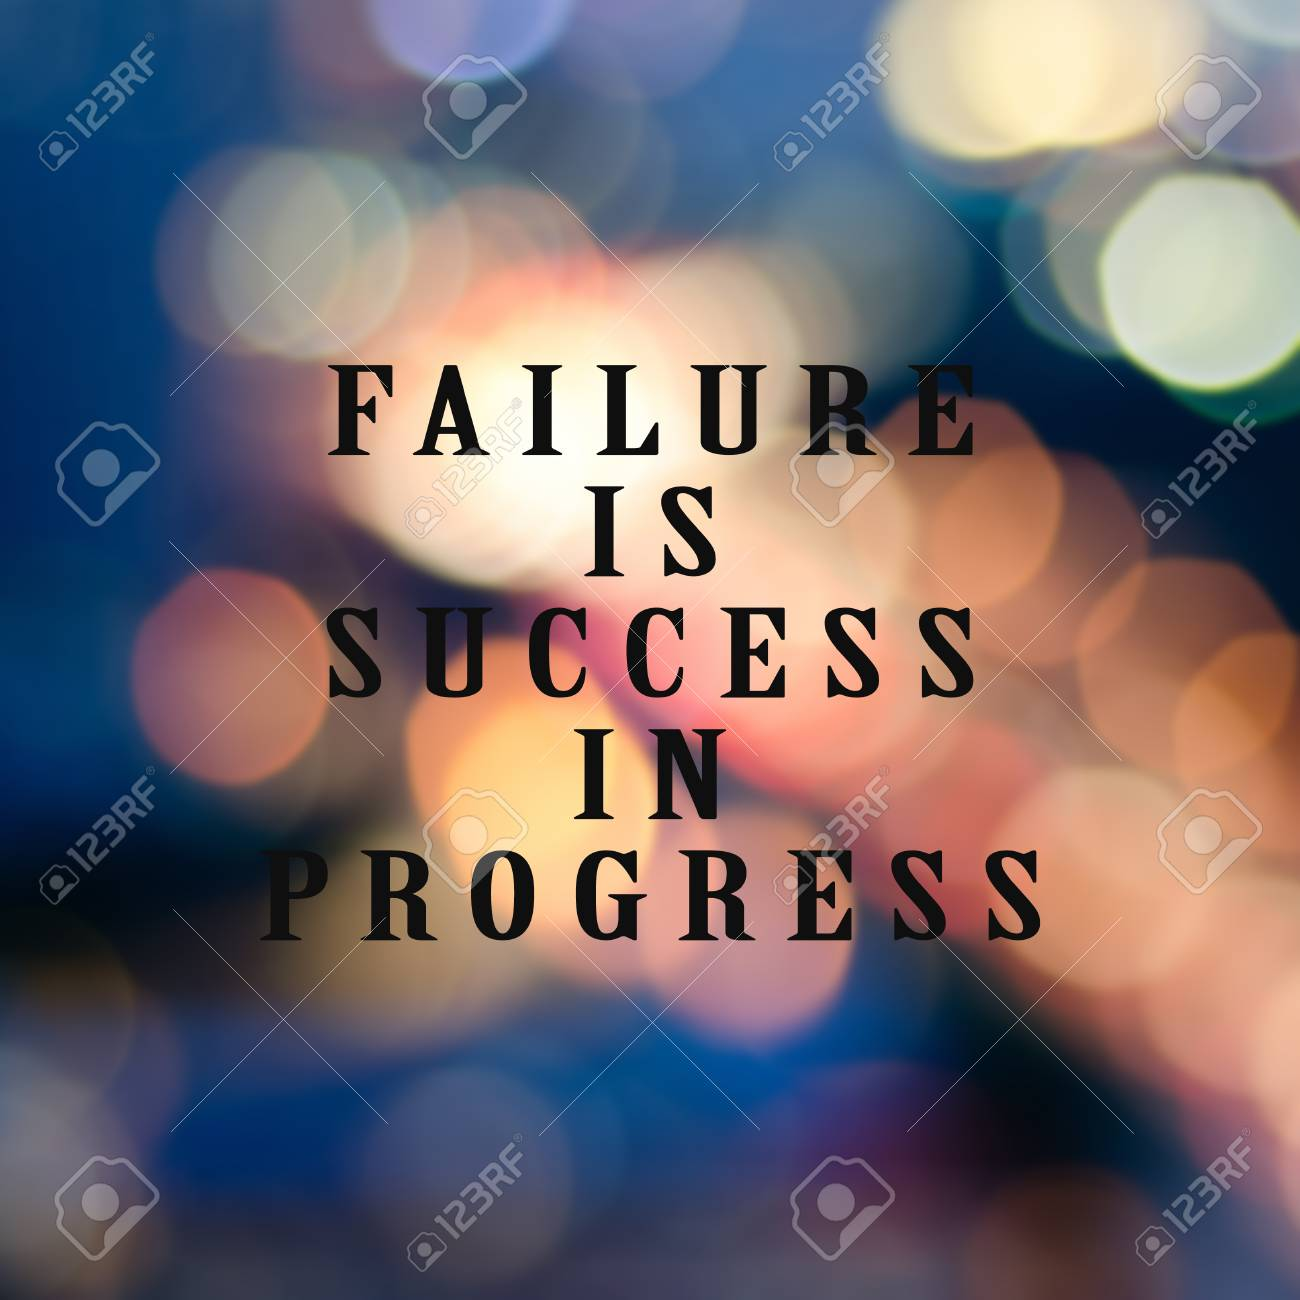 Motivational And Inspirational Life Quotes Failure Is Success